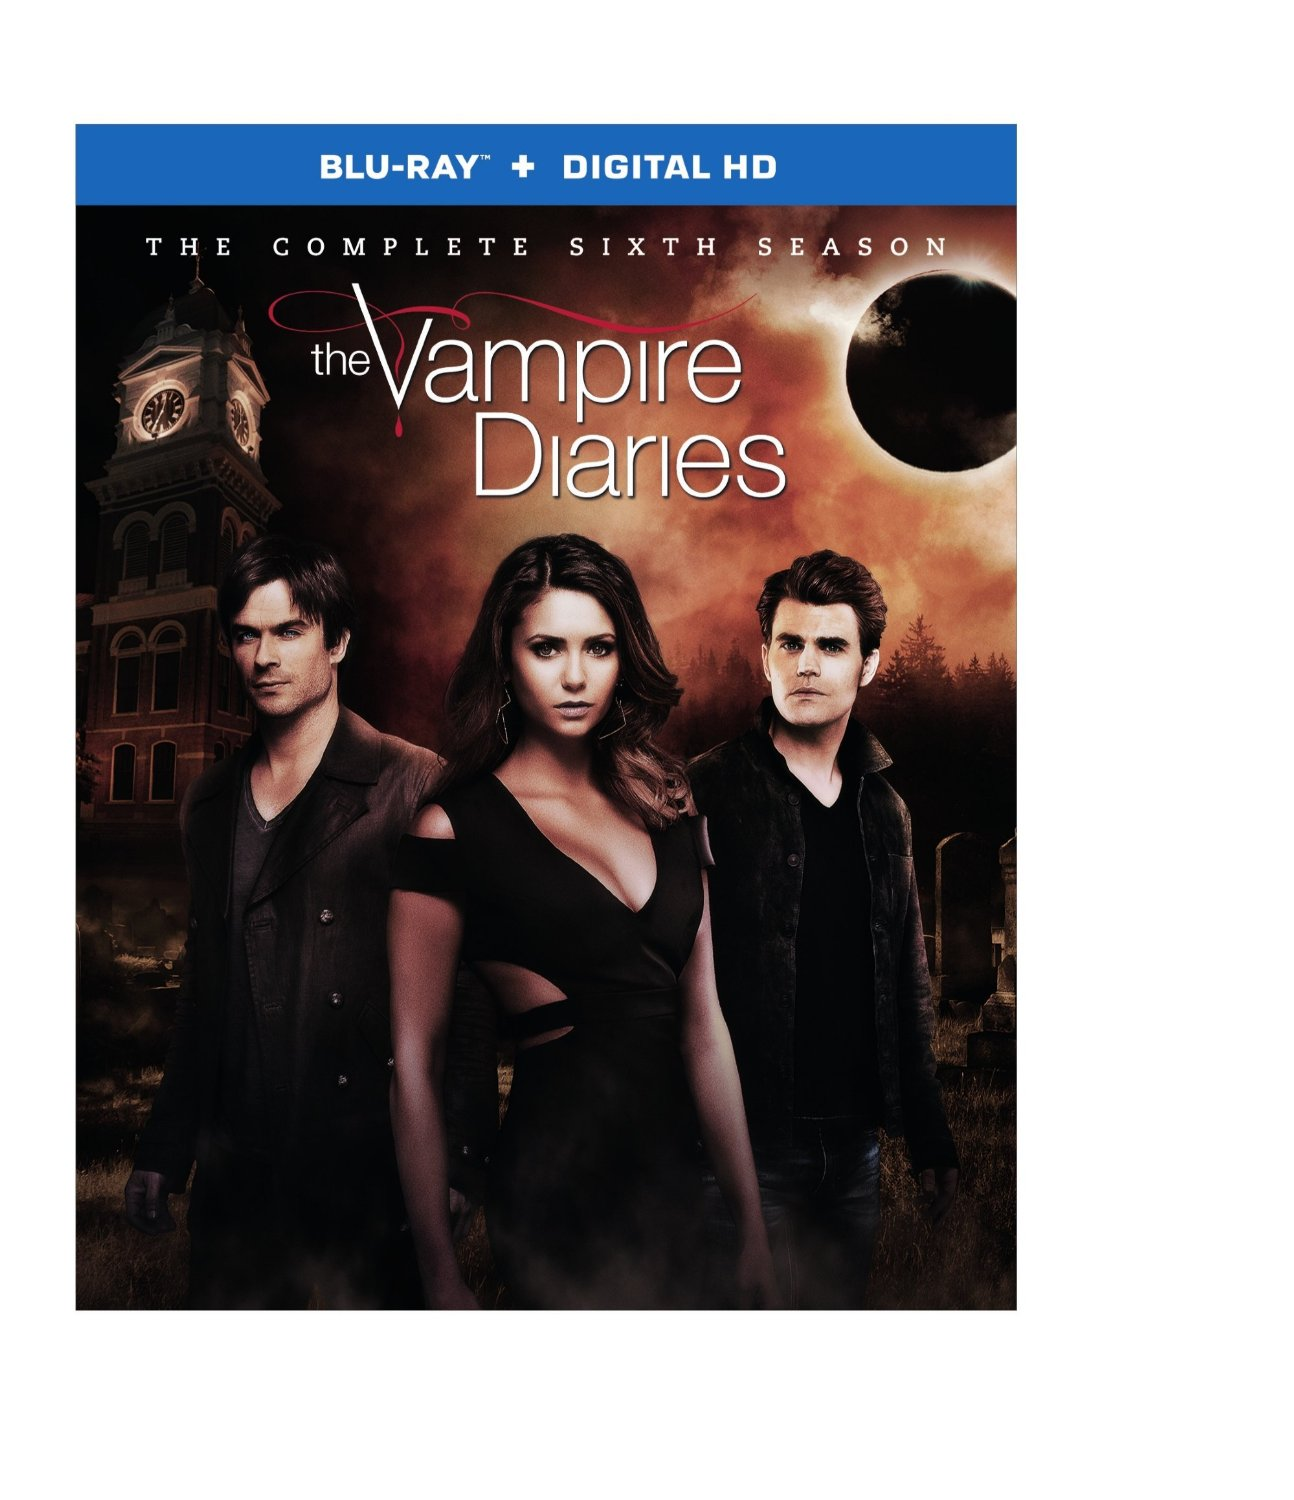 Vampire Diaries [TV Series] - The Vampire Diaries: The Complete Sixth Season